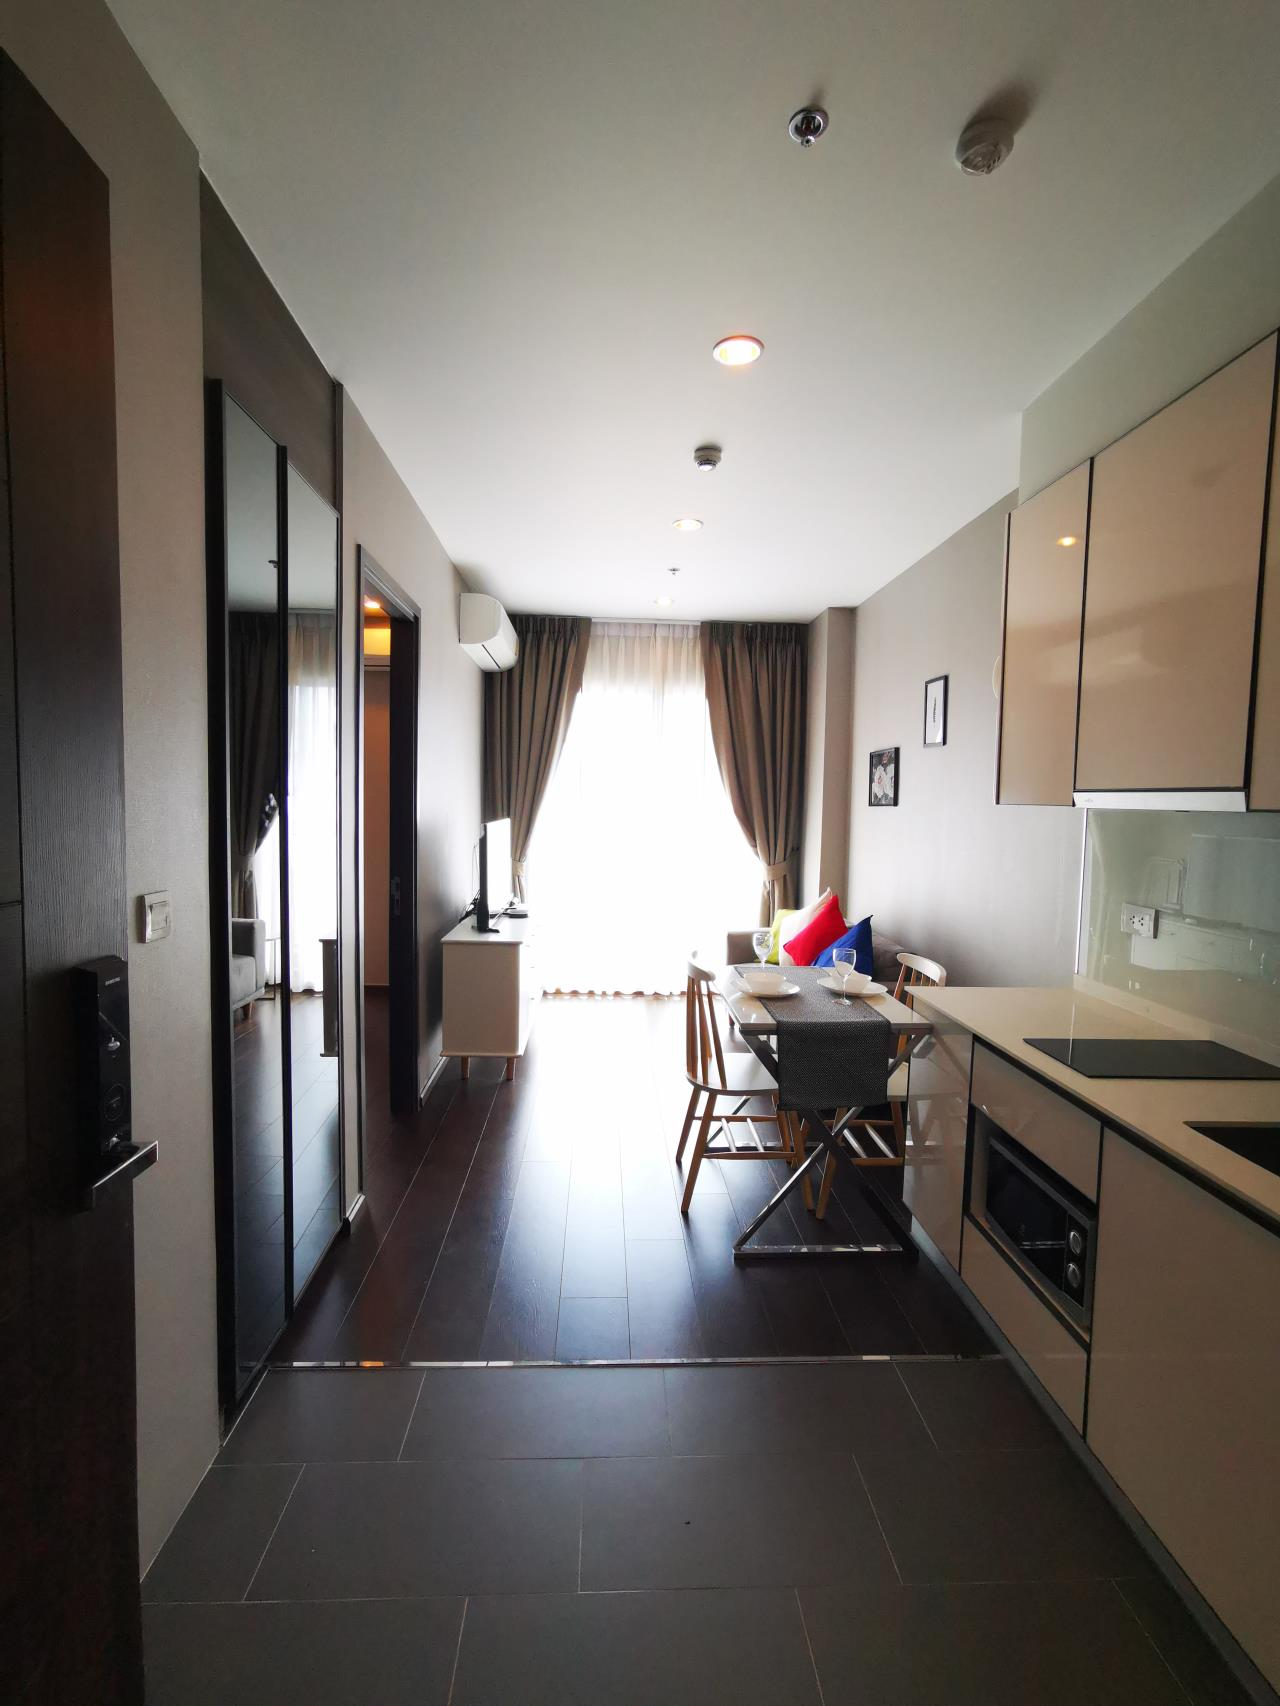 Edman & Partners Co.,Ltd. Agency's 1 Bedroom Condo for rent in C EKKAMAI, Khlong Tan Nuea, Bangkok 3